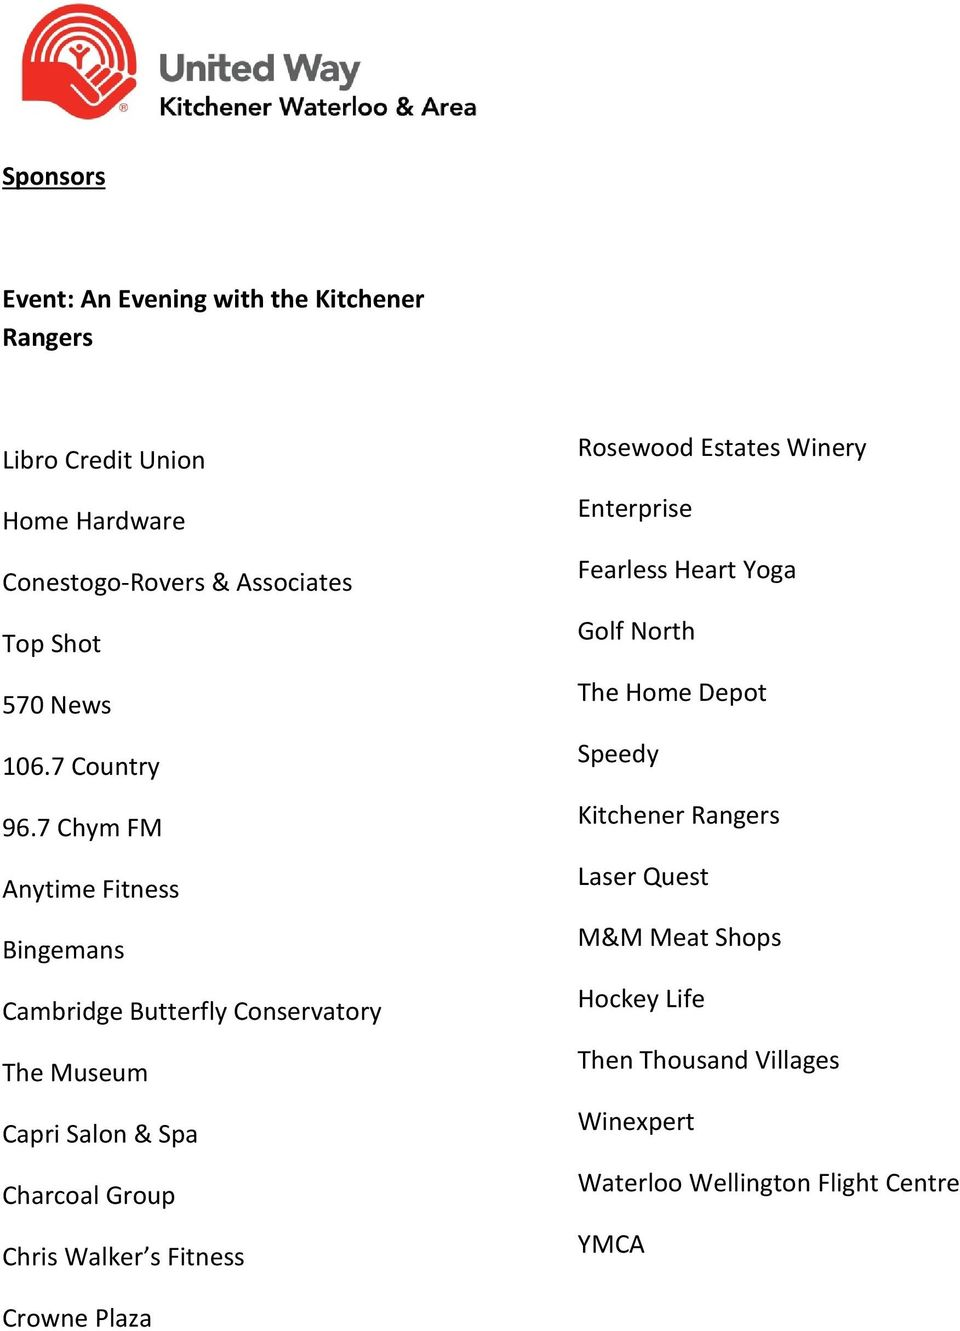 Organizations that gave to United Way KW through Workplace